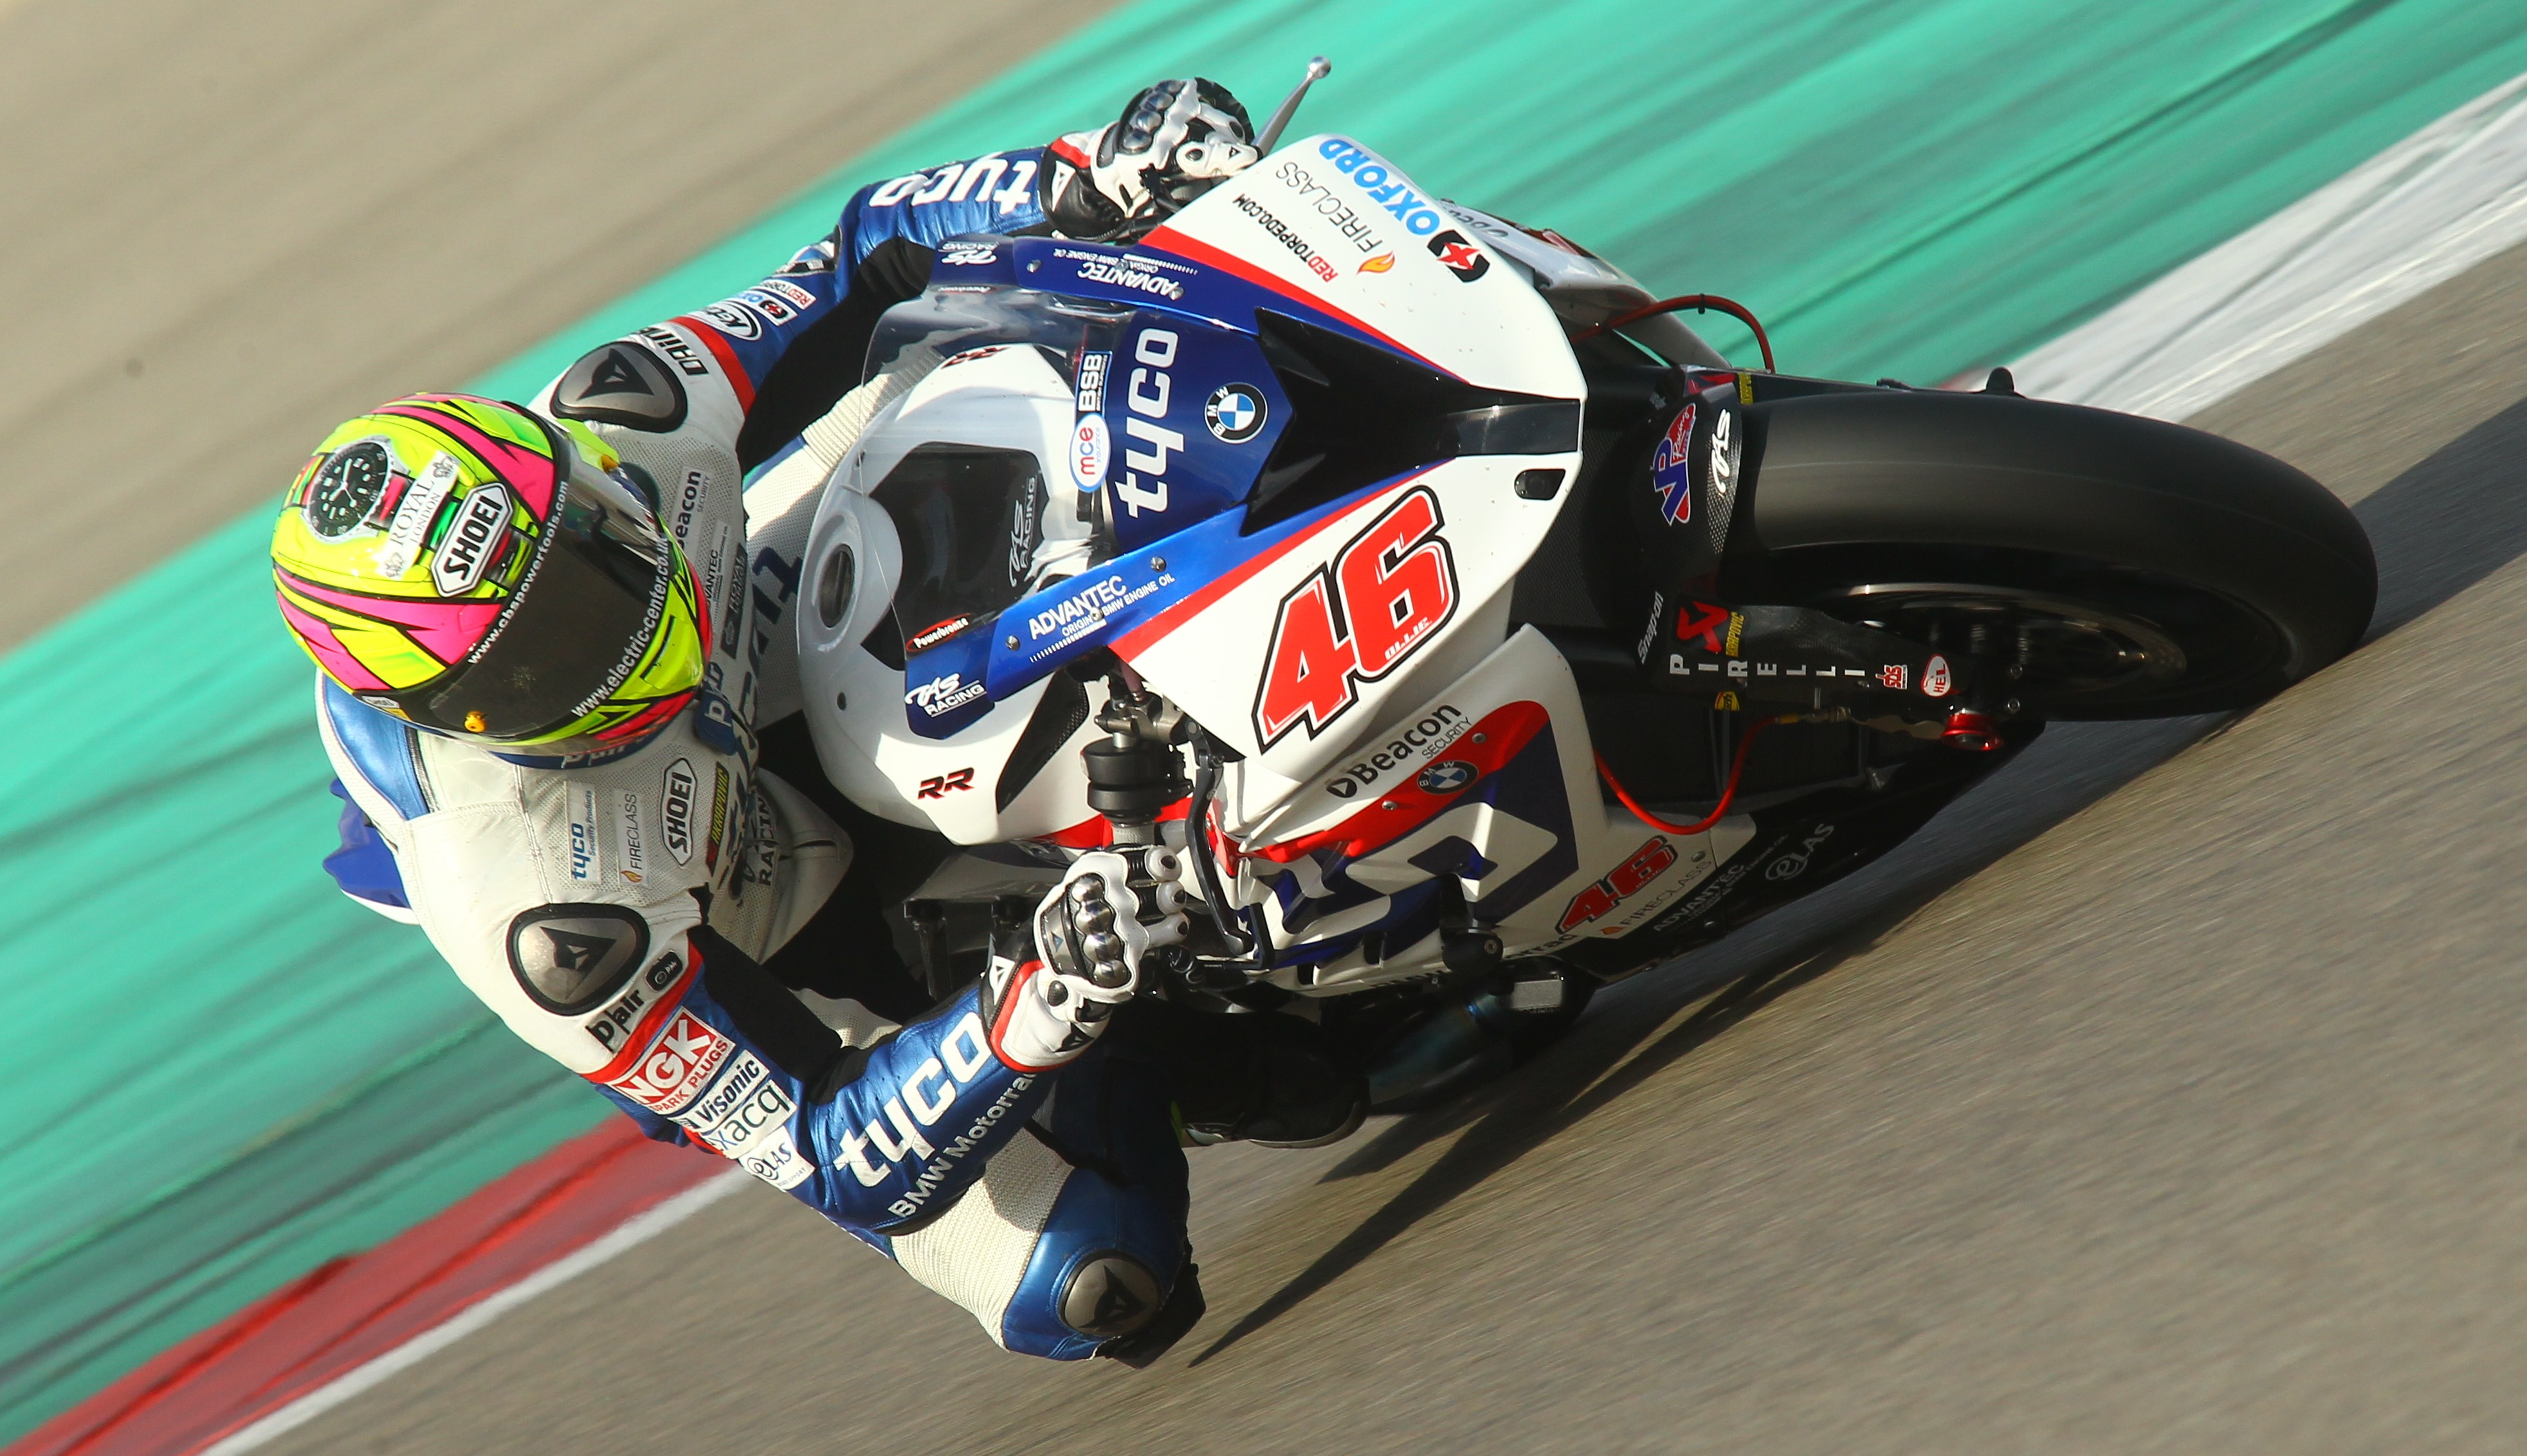 Tyco BMW S1000RR race replica - 75 made, UK only